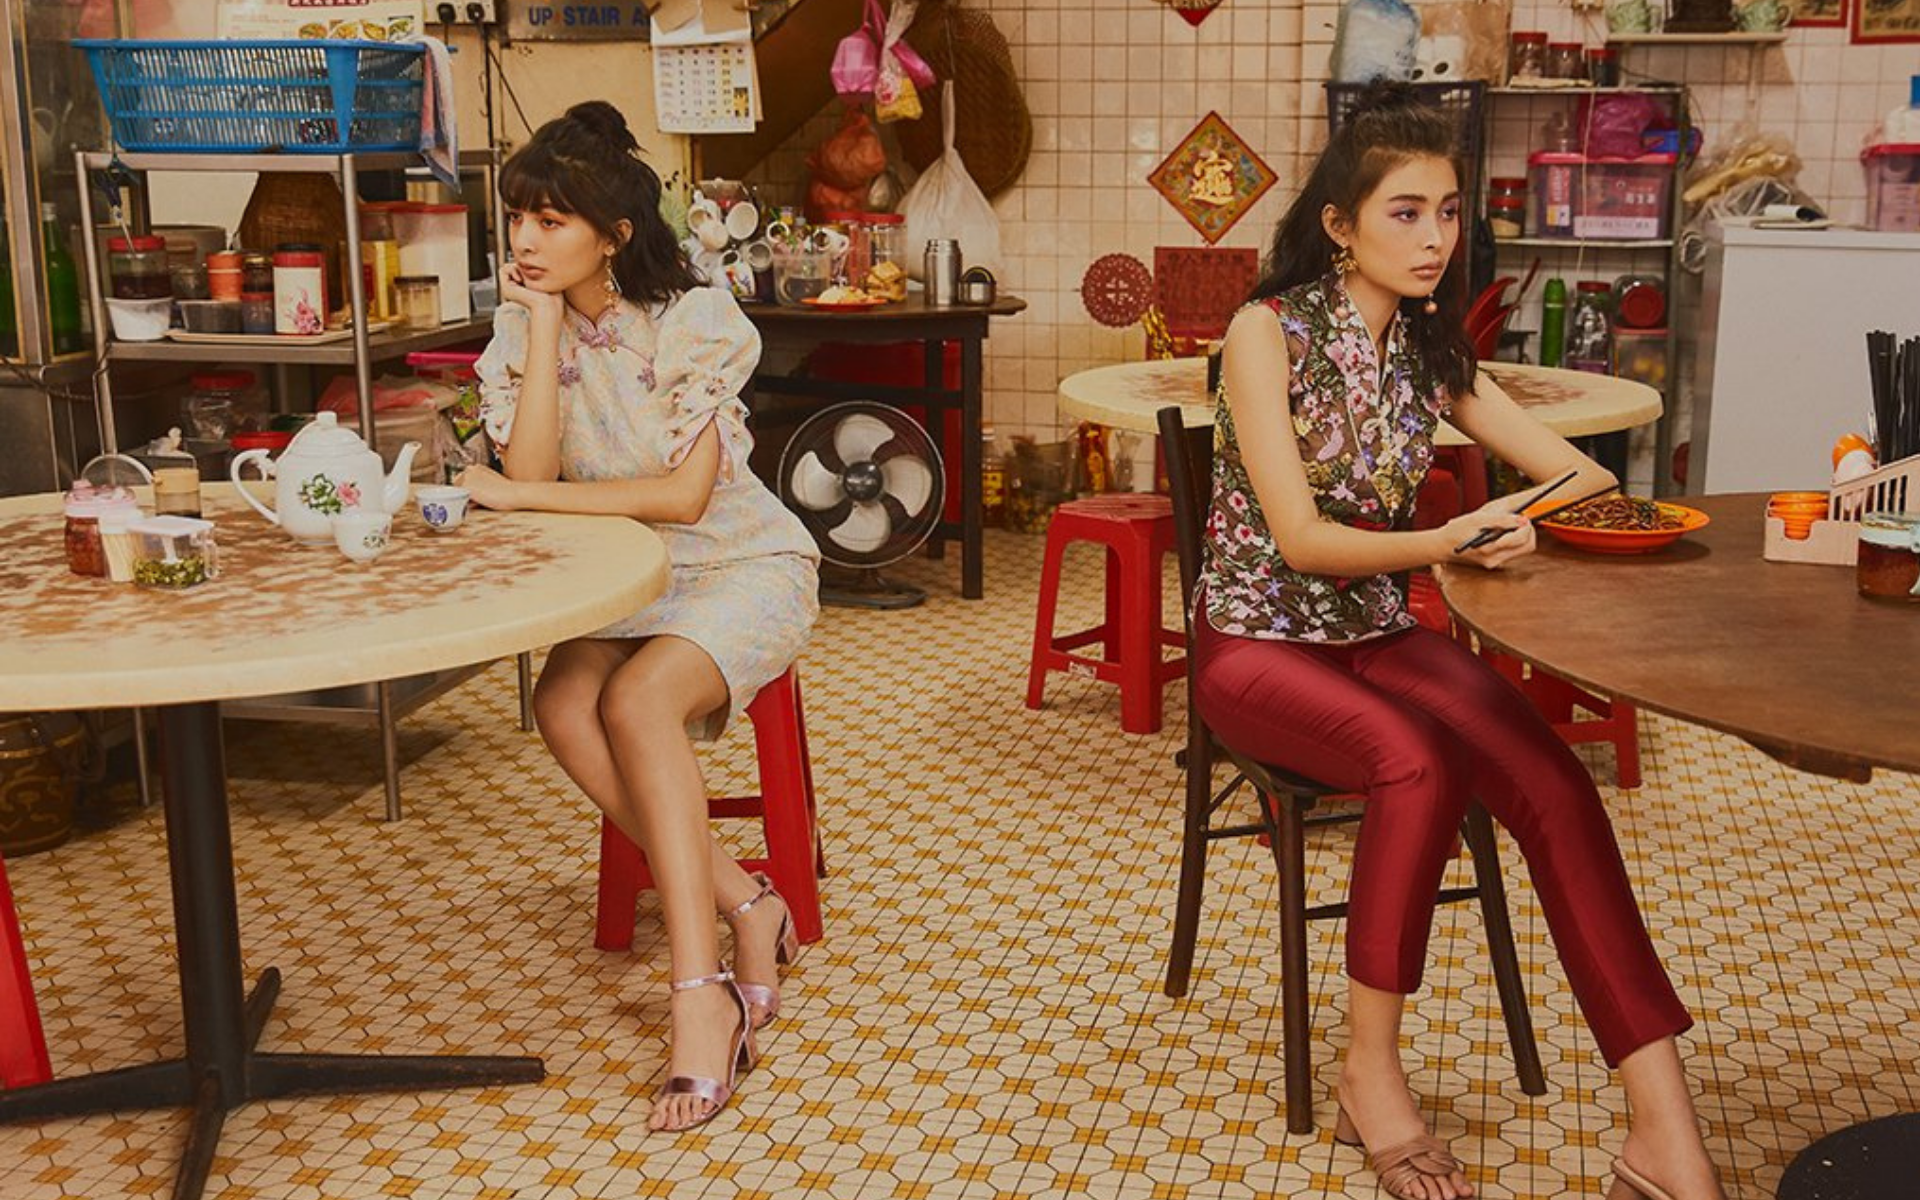 From Khoon Hooi To Melinda Looi: 6 Lunar New Year Collections By Malaysian Designers